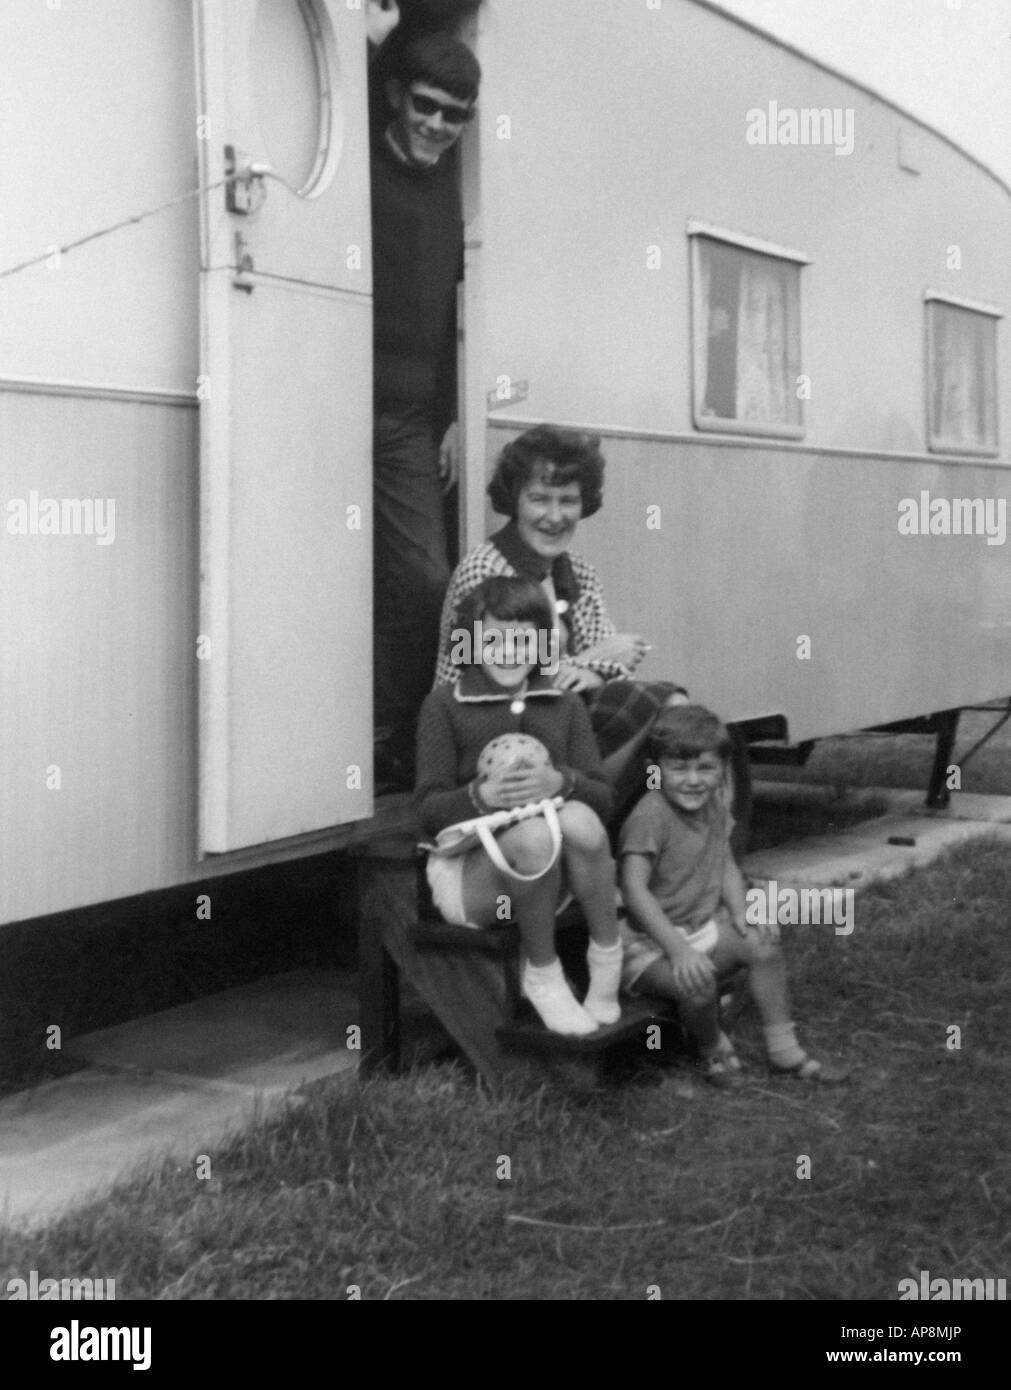 Old black and white family photograph snap shot portrait of mother and her children sat outside a caravan circa 1950